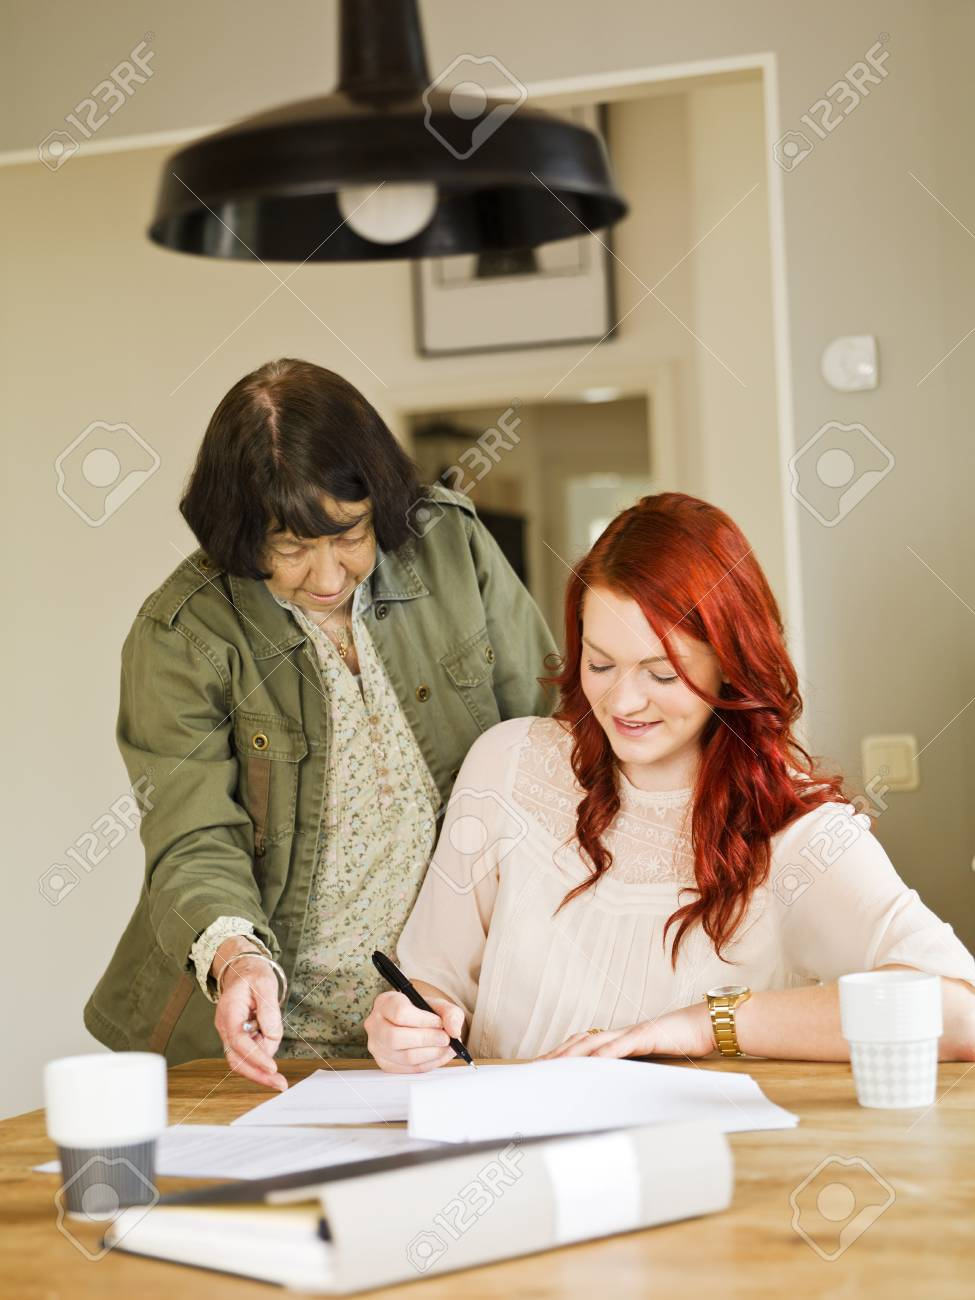 Grandmother helping her grandaughter with paperwork Stock Photo - 12899180